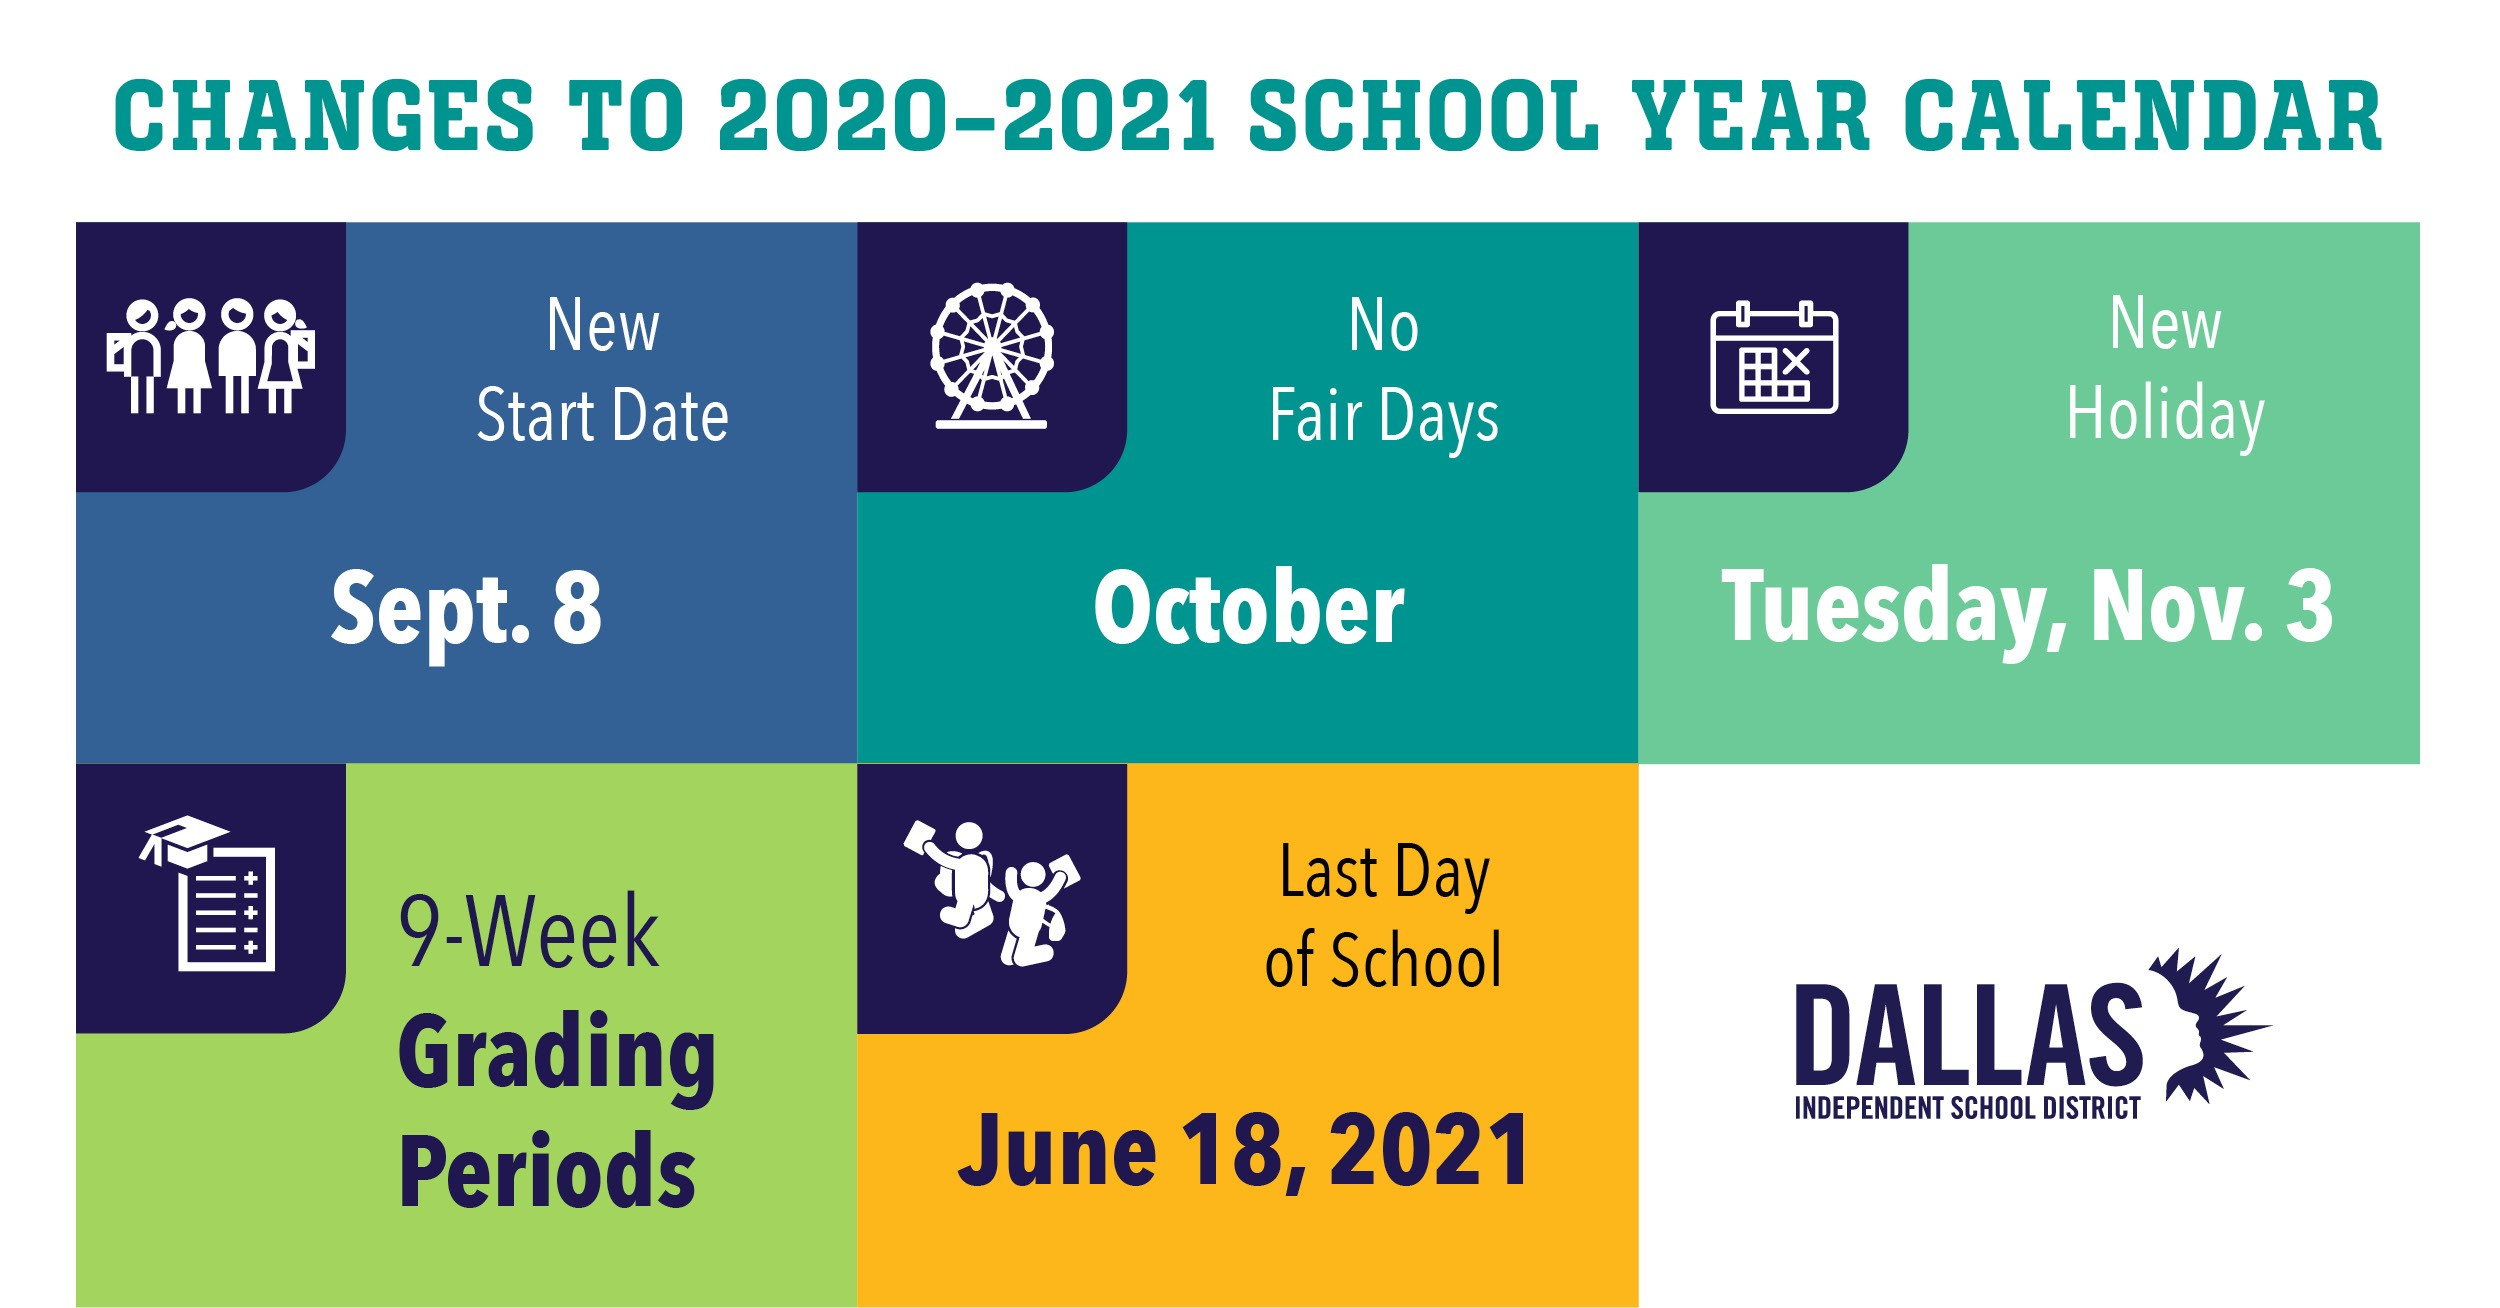 Dallas Isd 2021-22 Calendar Images